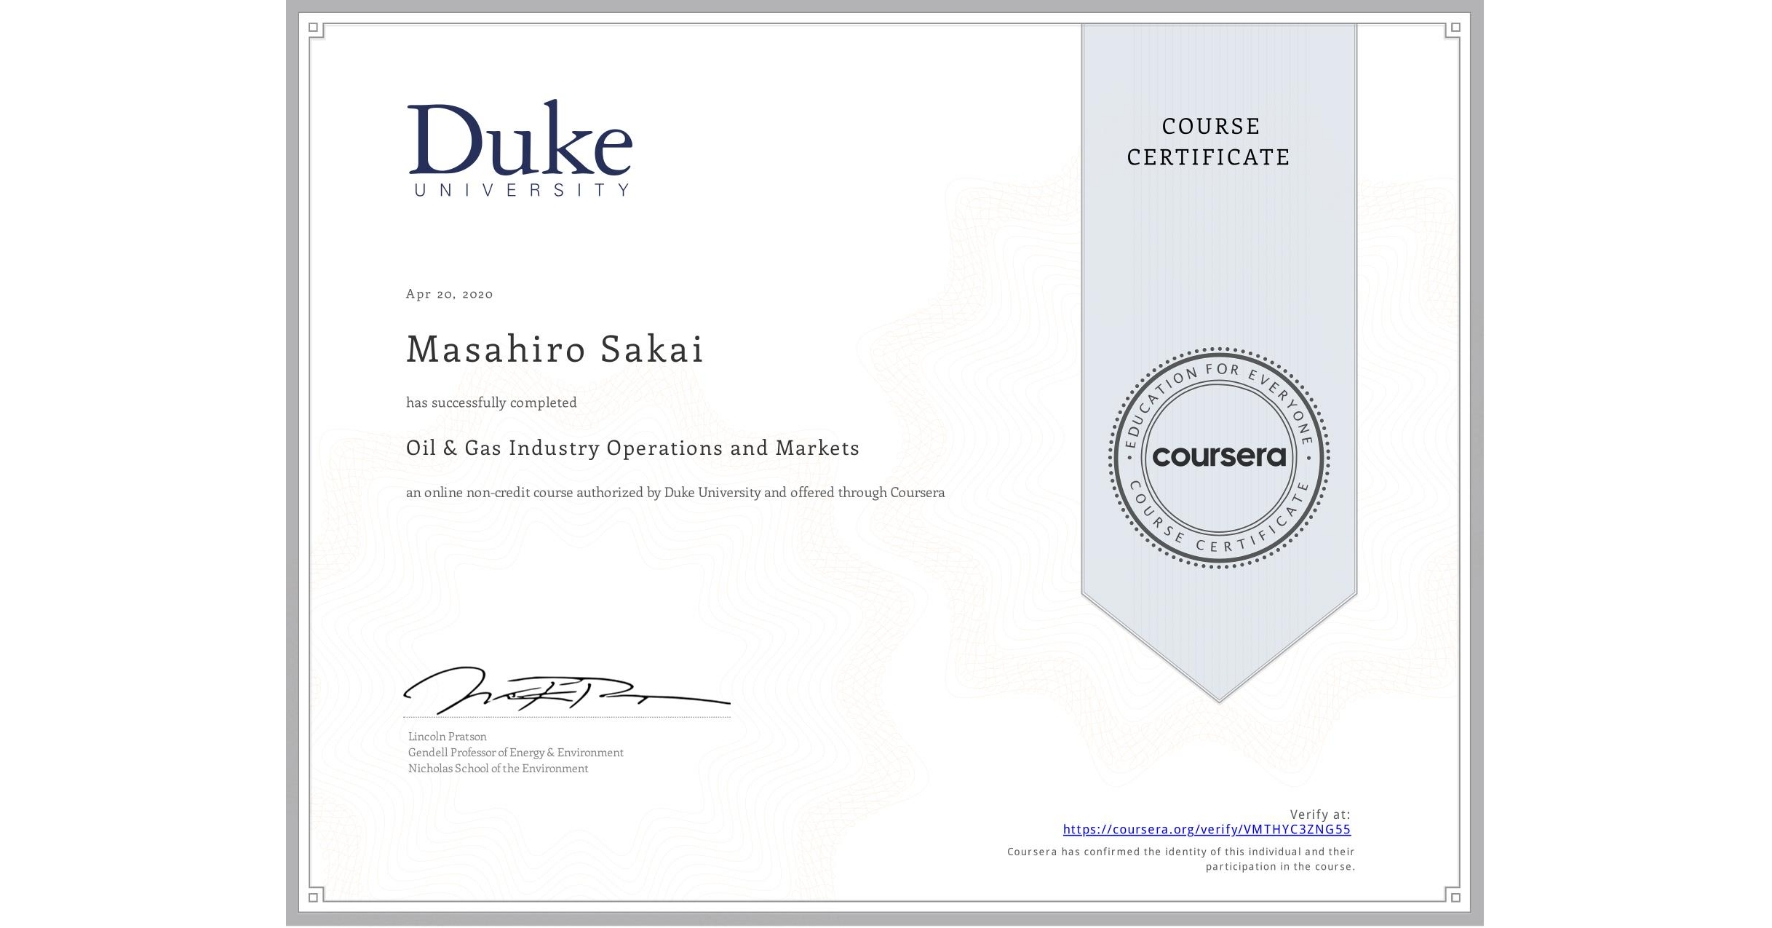 View certificate for Masahiro Sakai, Oil & Gas Industry Operations and Markets , an online non-credit course authorized by Duke University and offered through Coursera